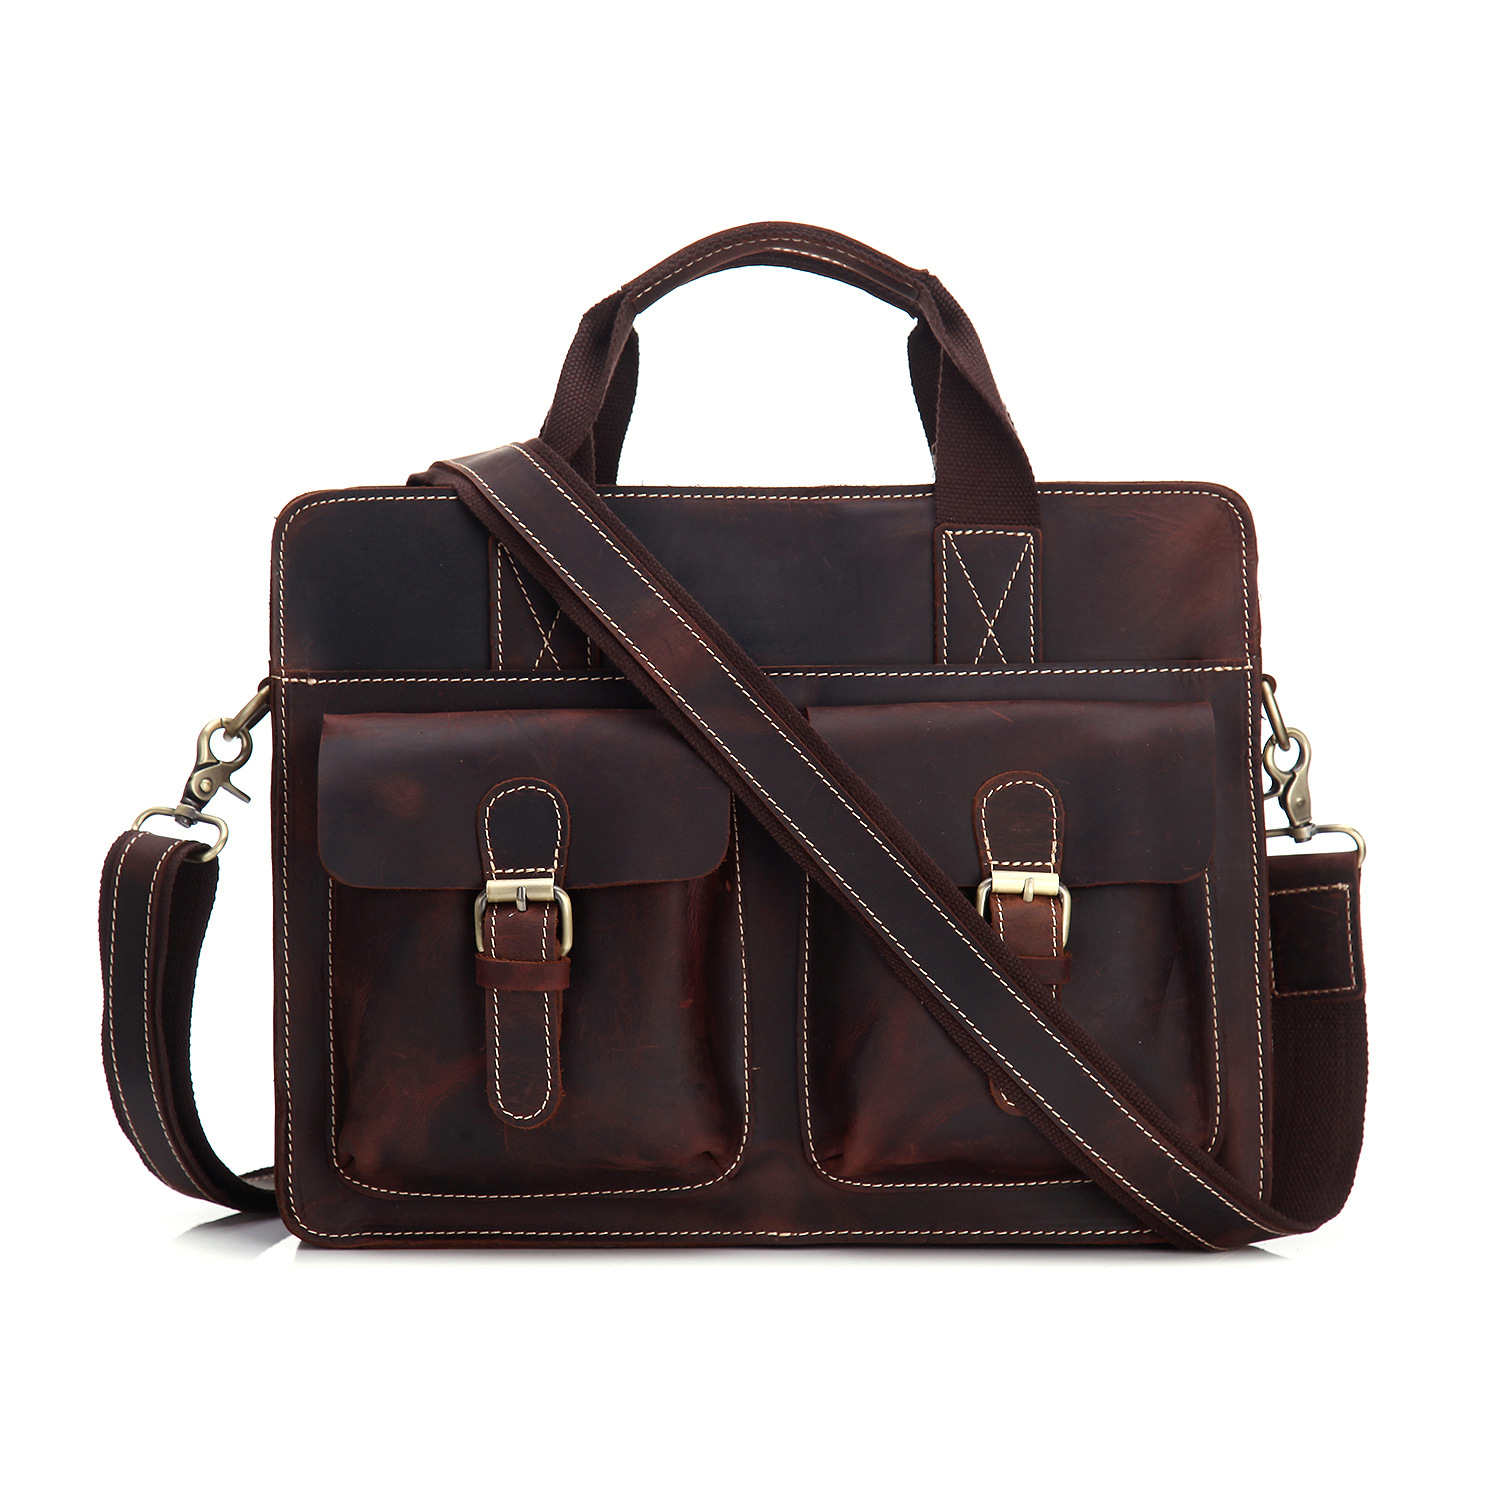 Genuine Leather Men's Bag New First Layer Leather Shoulder Cross Body Bag Crazy Horse Leather Retro Computer Bag Messenger Bag first layer genuine leather crazy horse pen bag zipper retro portable simple pencil case with hand tail traveler school supplies